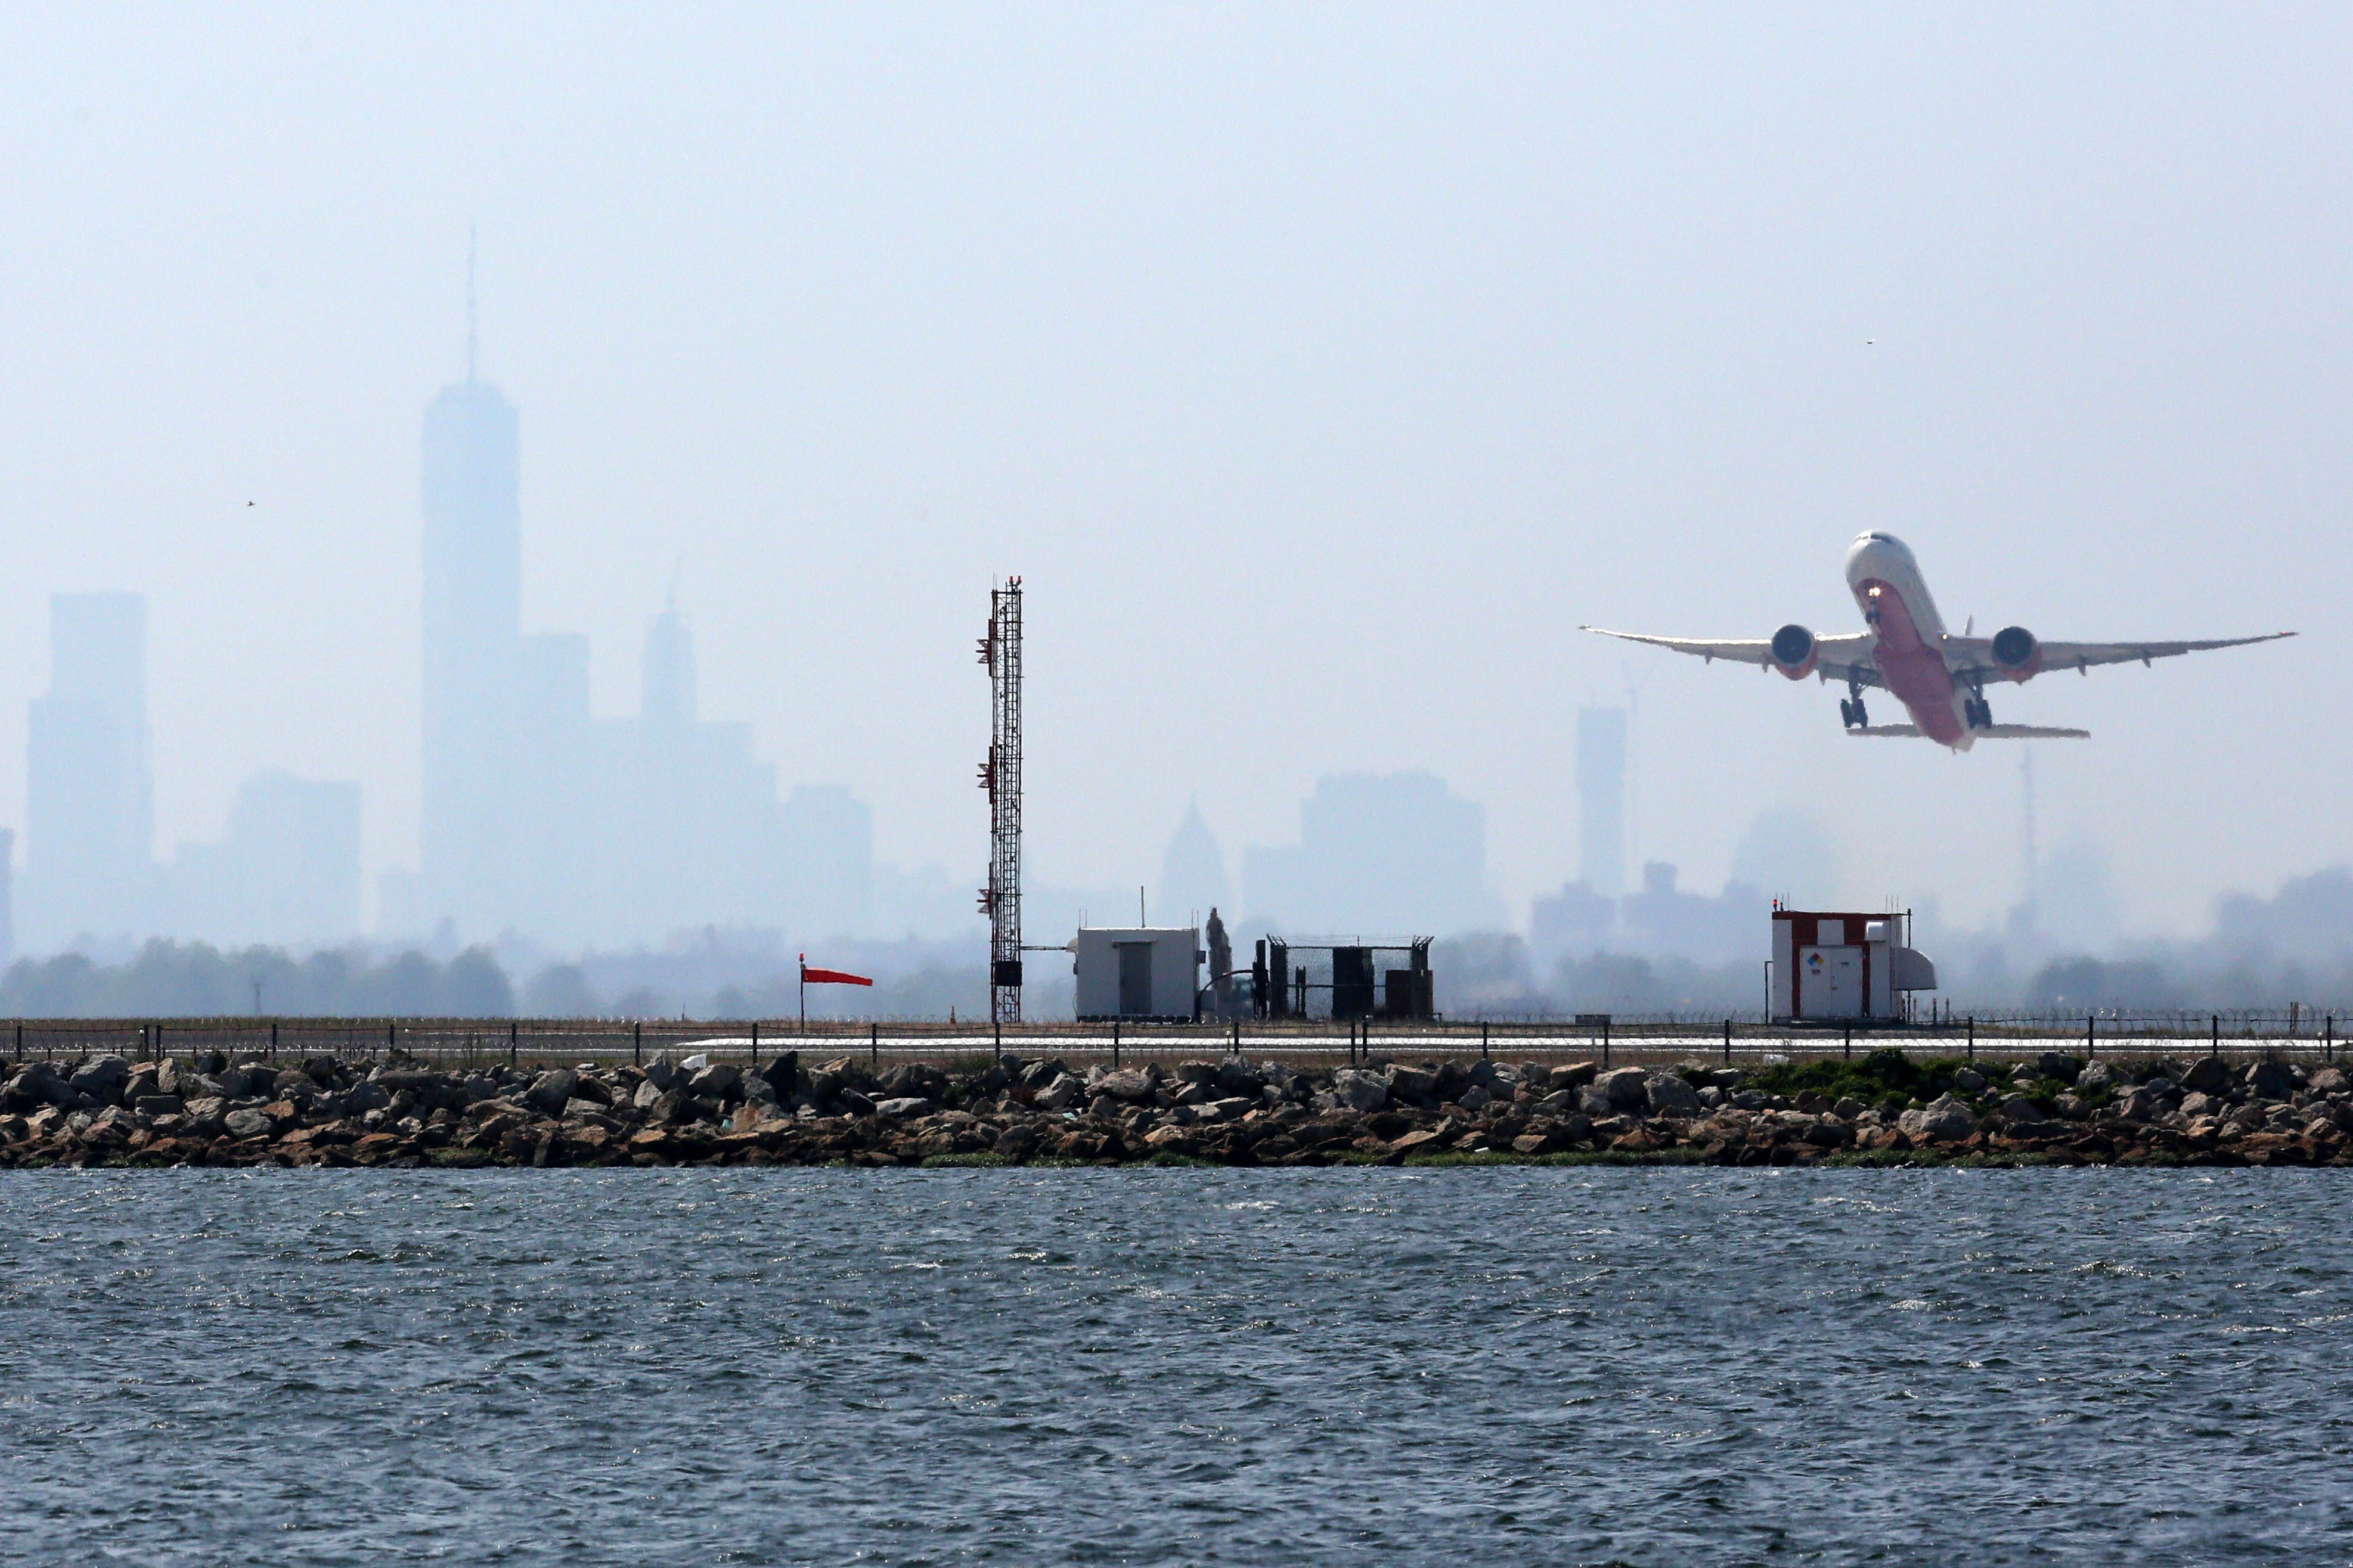 An aircraft takes off from New York's John F. Kennedy Airport on May 25, 2015.